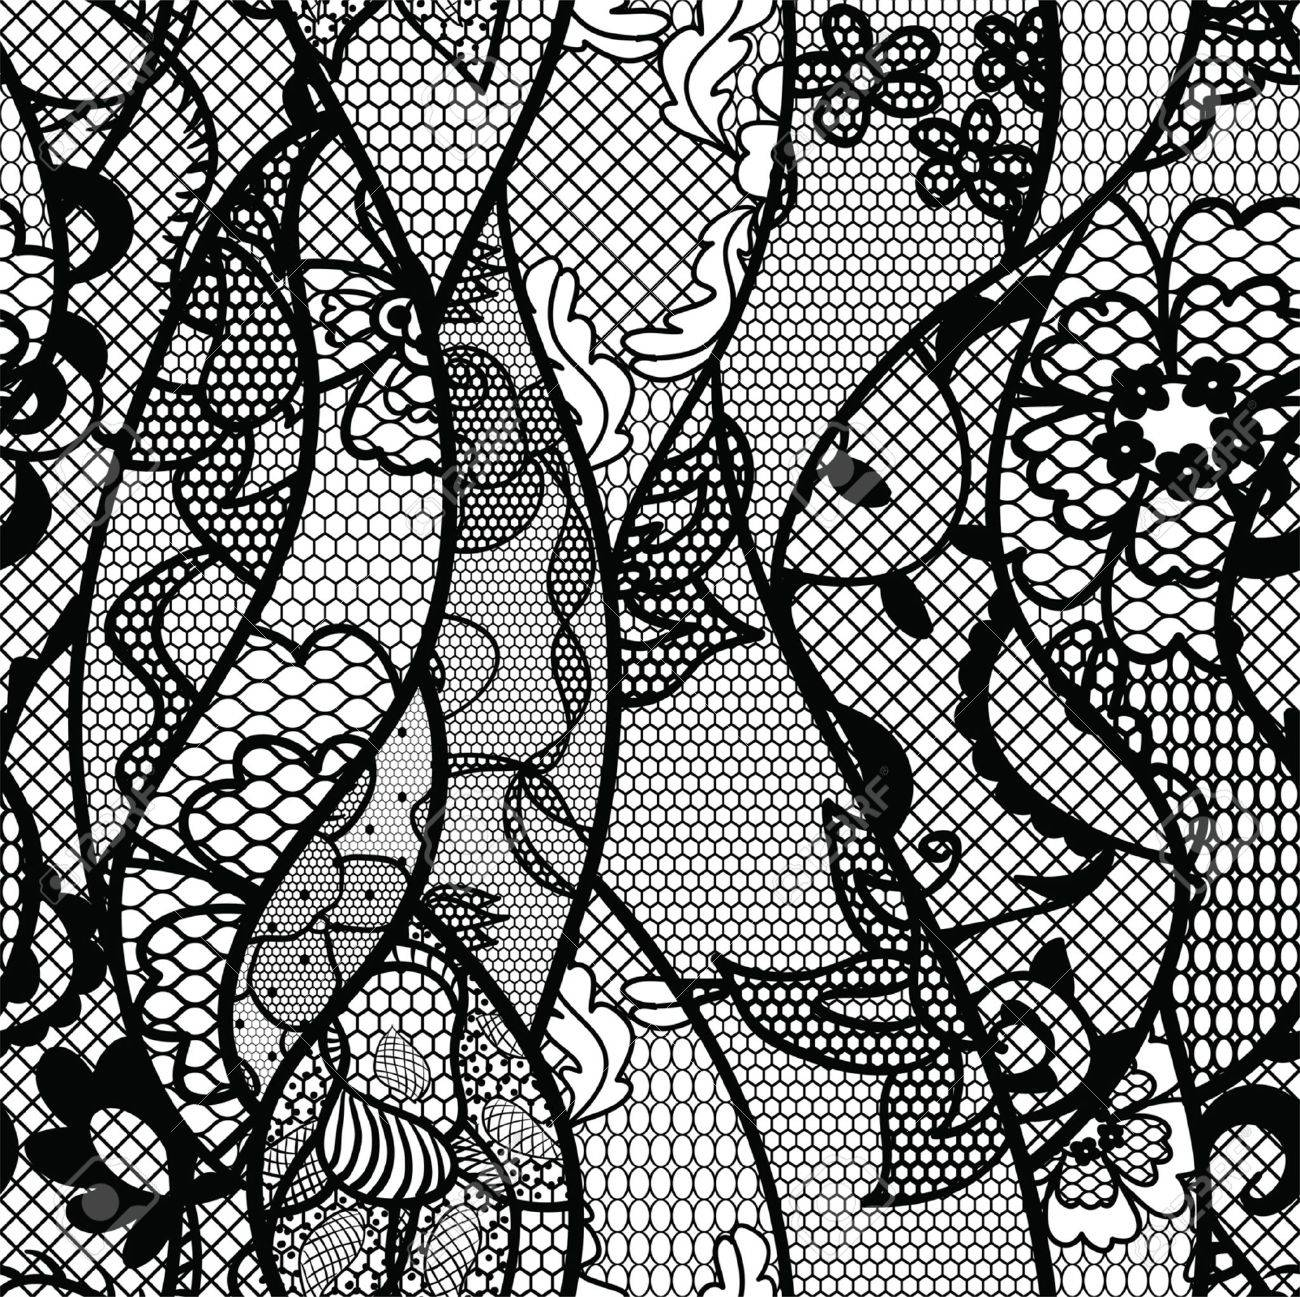 Black lace vector fabric seamless pattern with lines and waves - 16570265